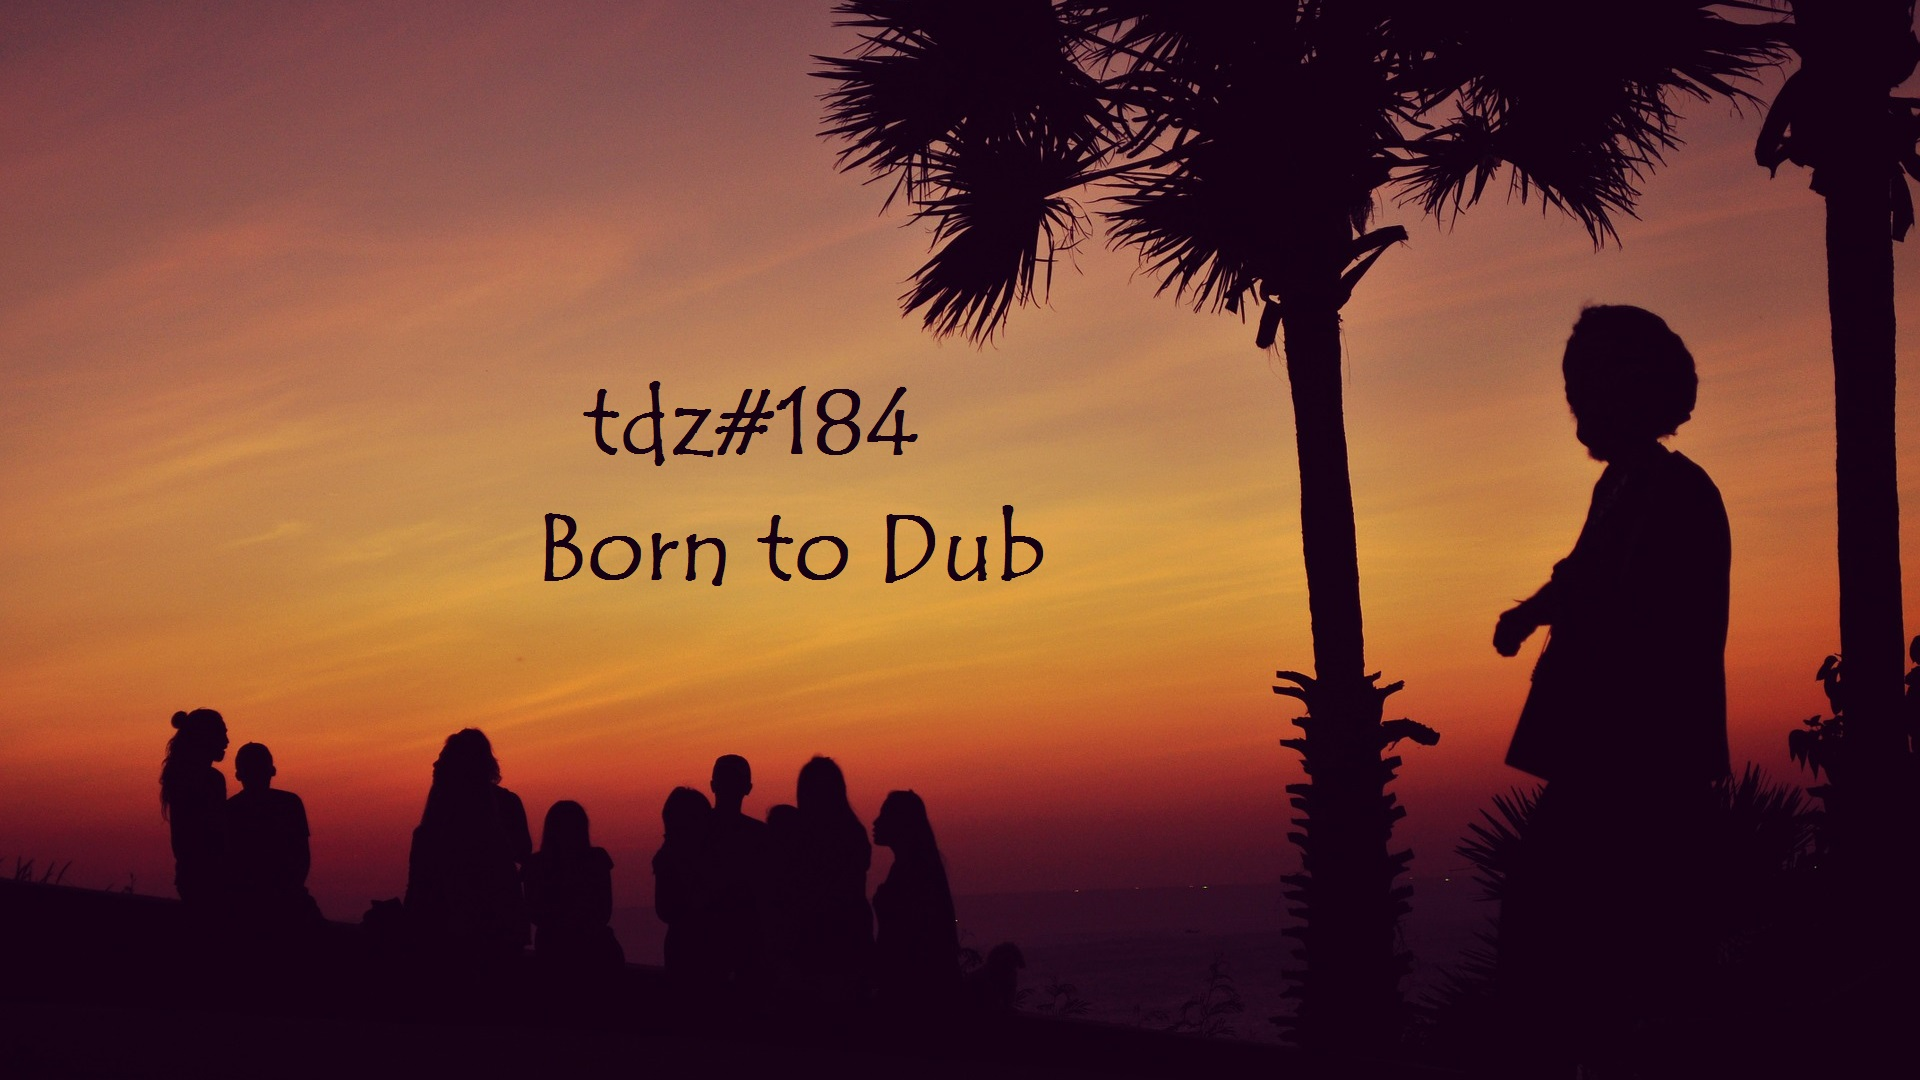 TDZ#184... Born to Dub.....